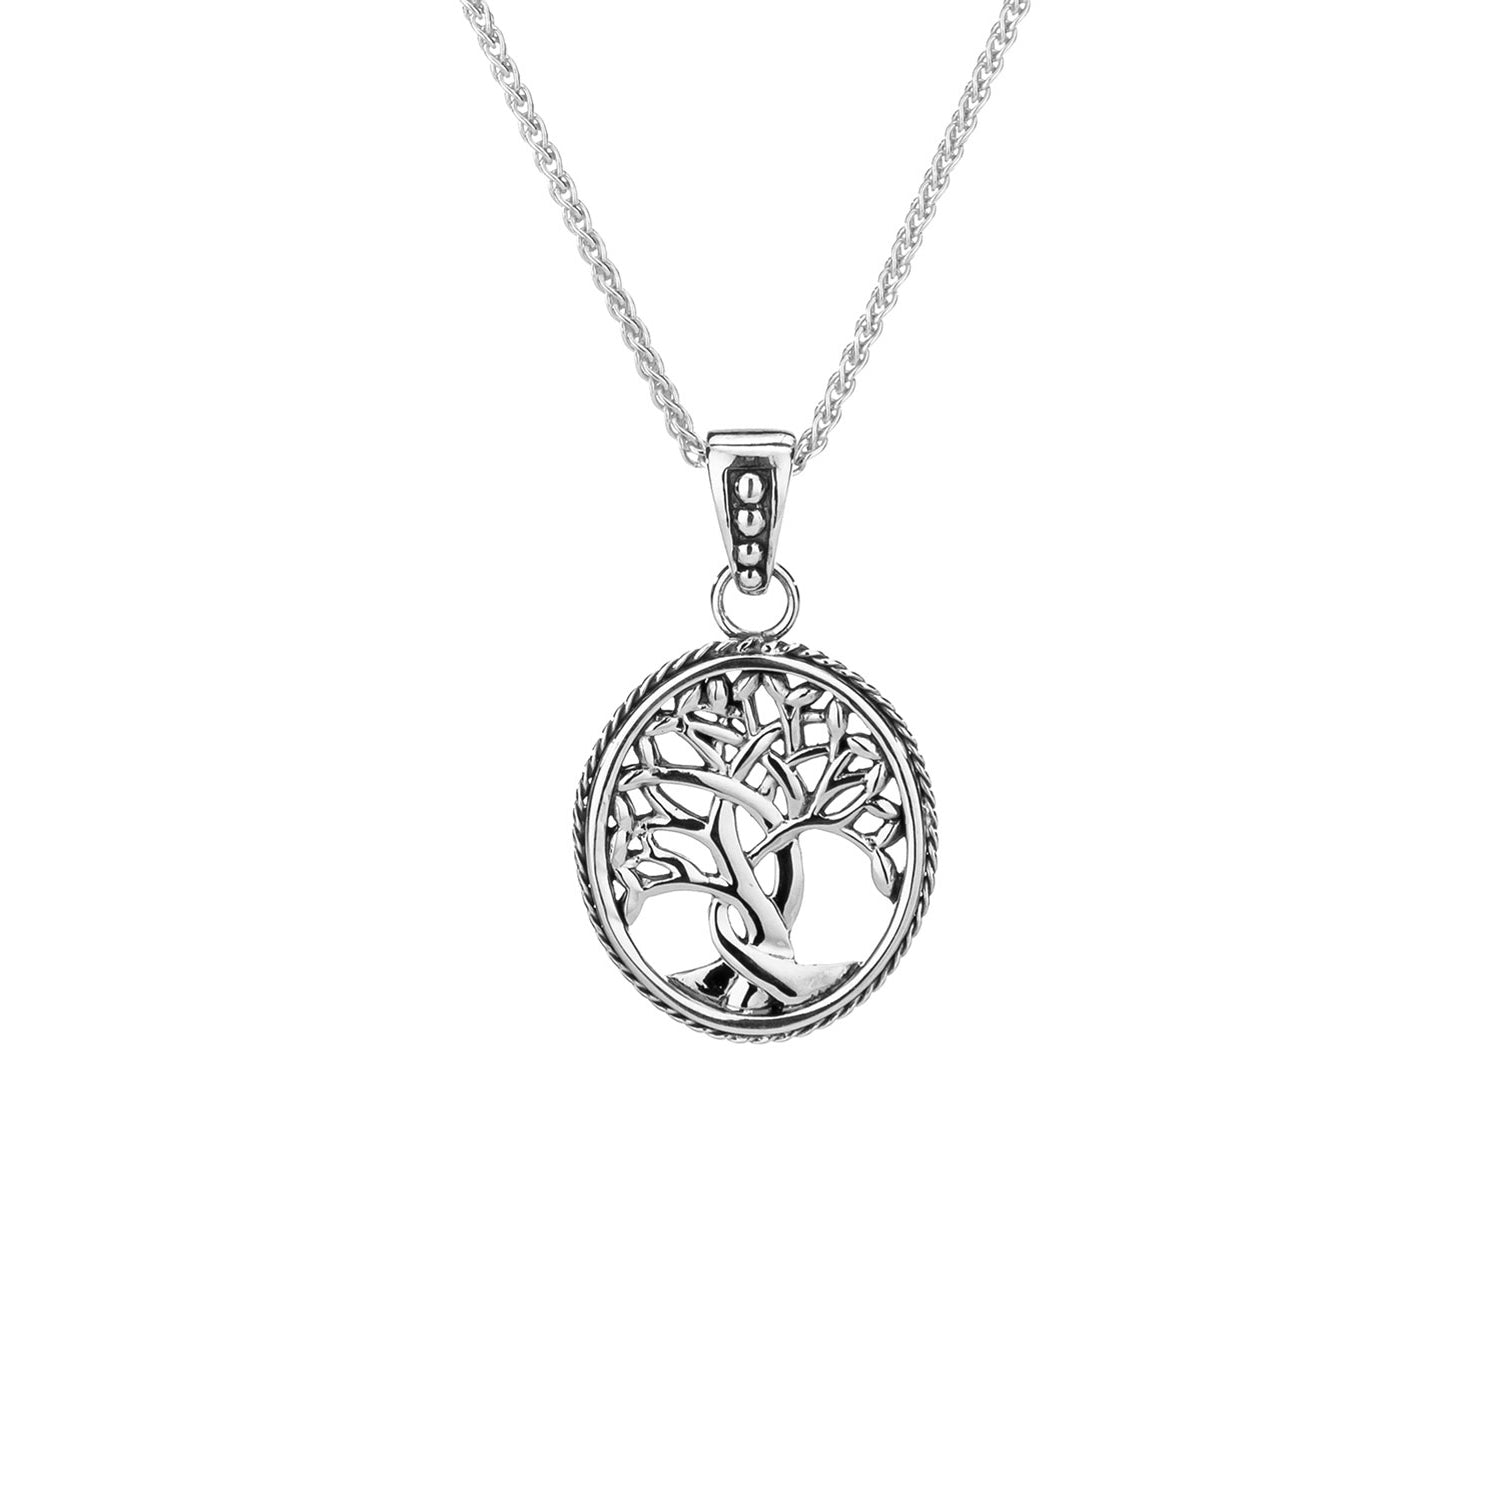 Pendant Tree of Life Small Pendant from welch and company jewelers near syracuse ny